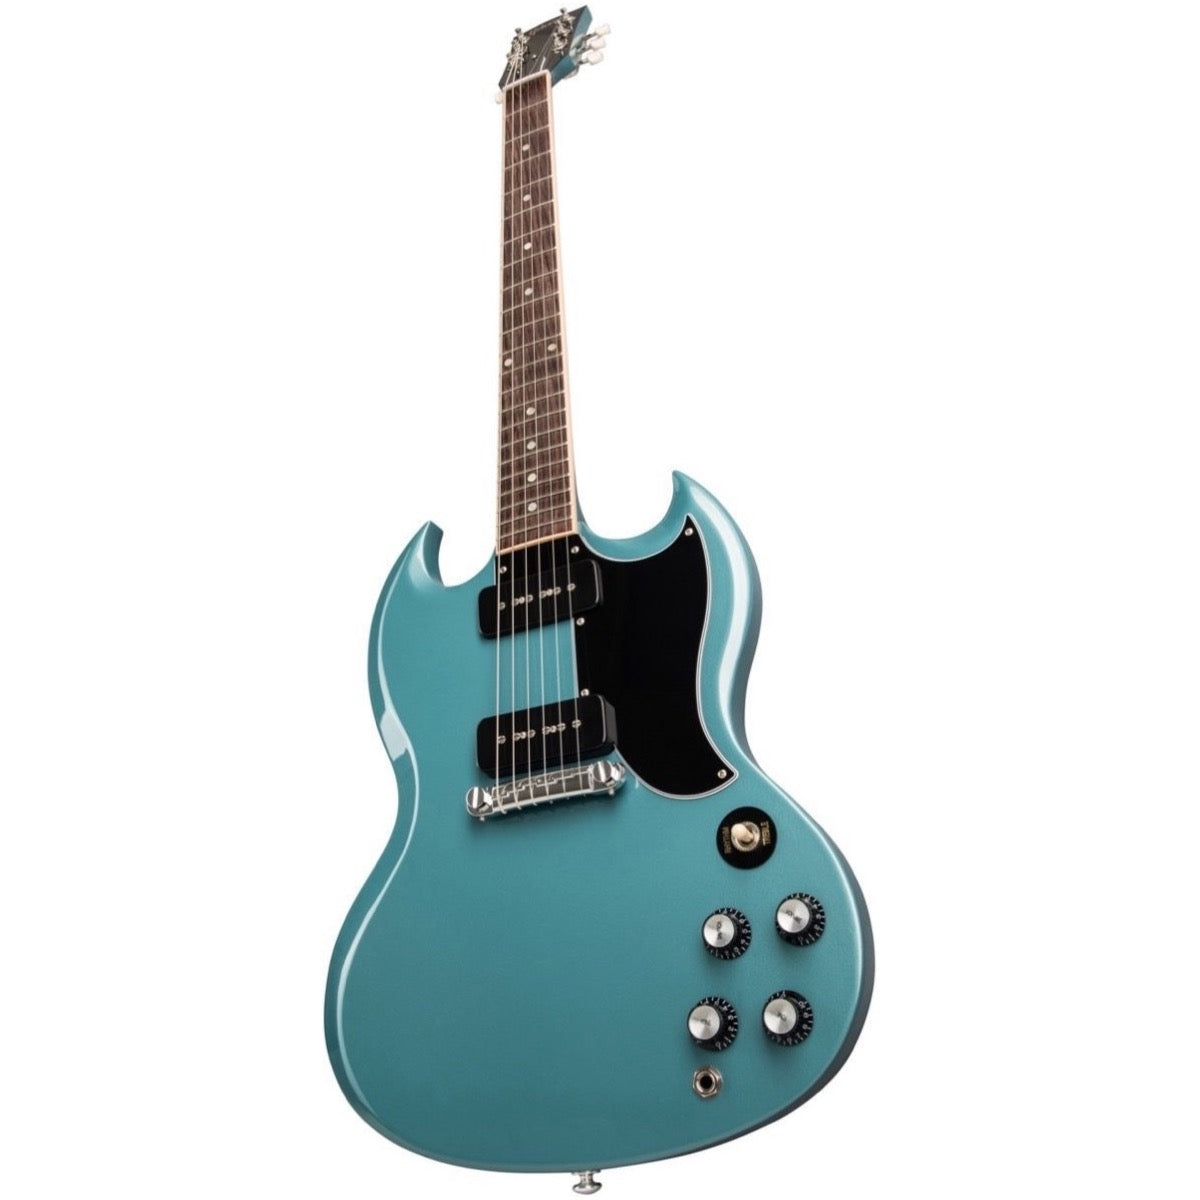 Gibson SG Special Electric Guitar (with Case), Faded Pelham Blue